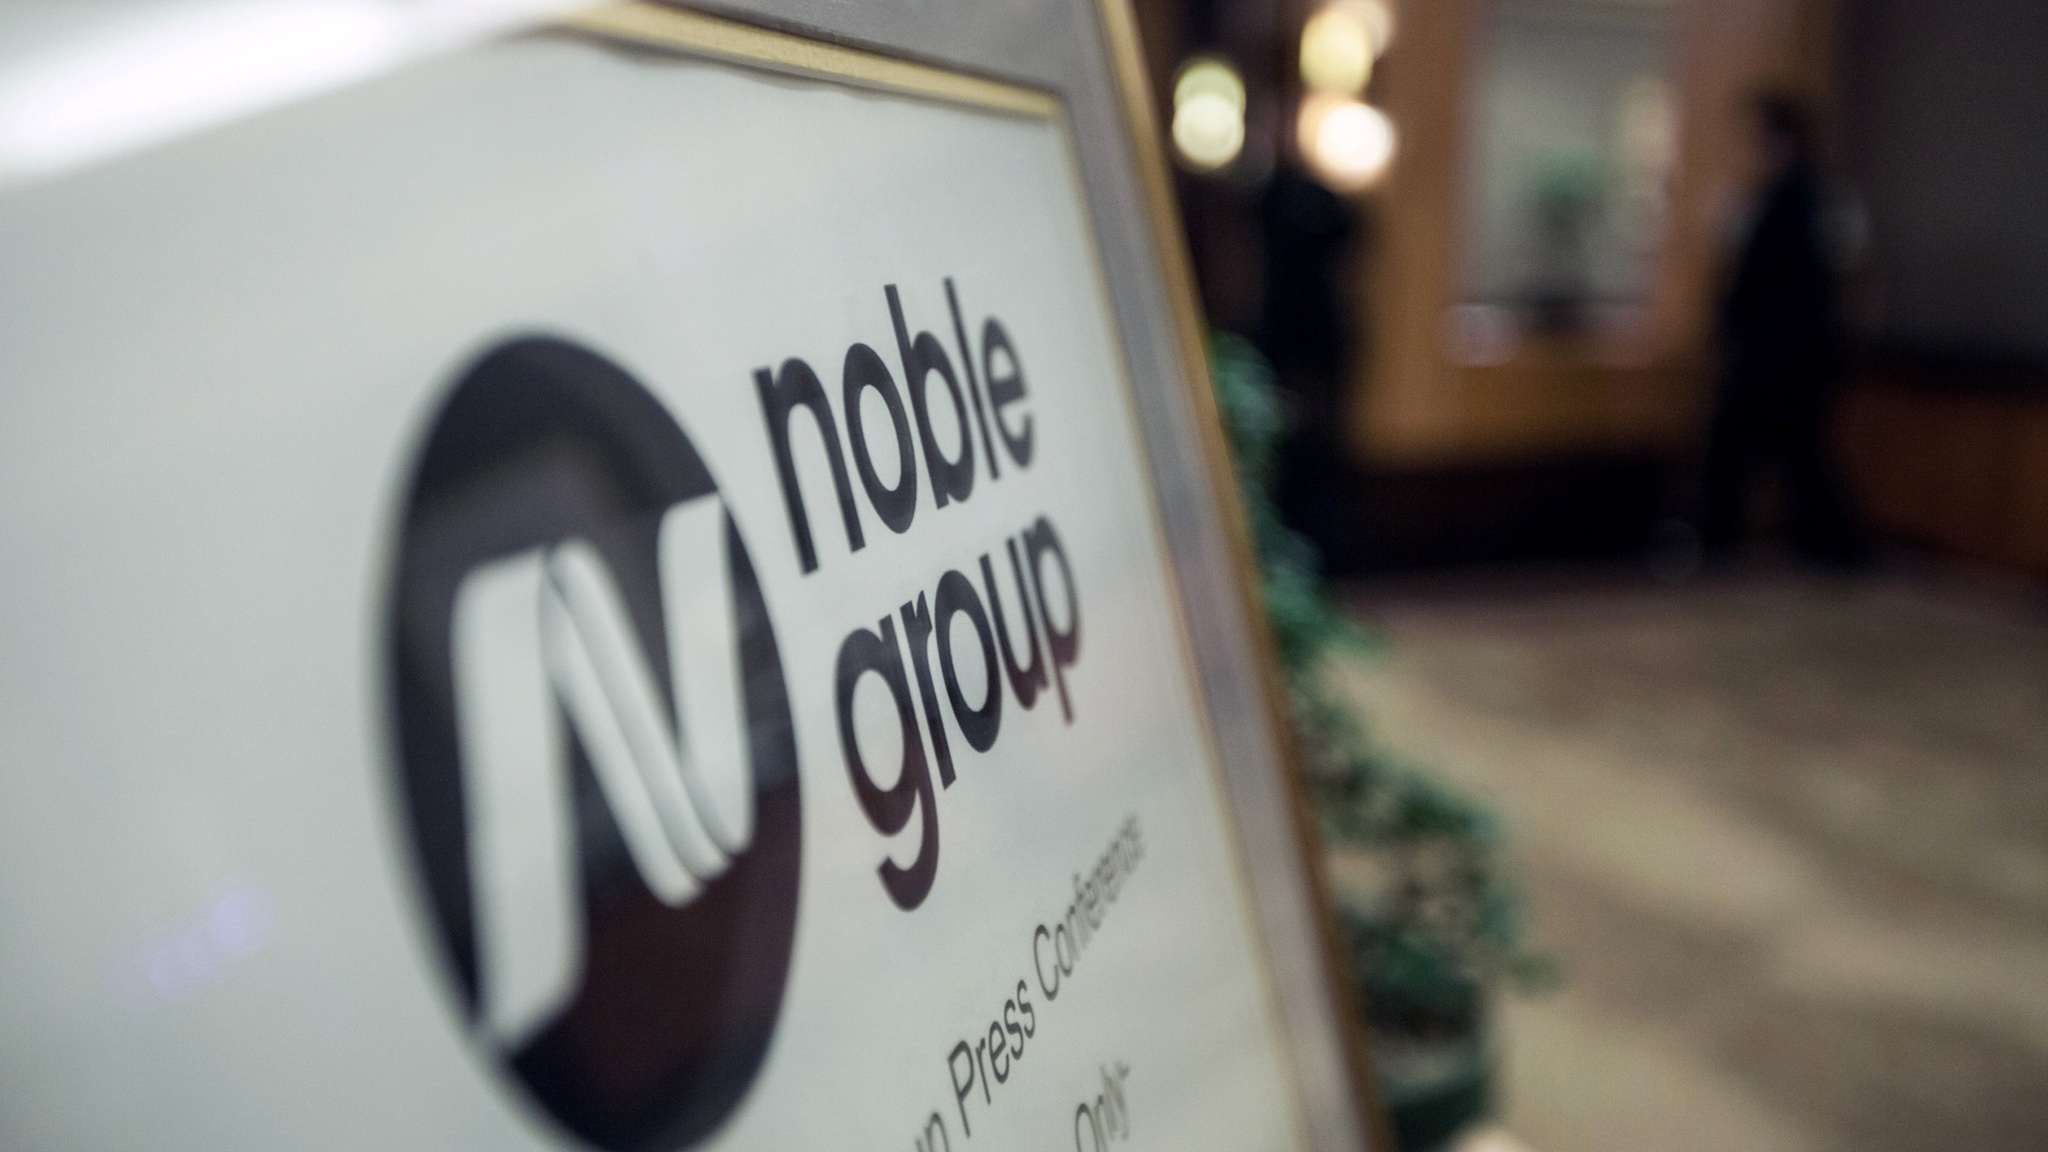 Noble shareholders to face heavy hit under debt restructuring plan